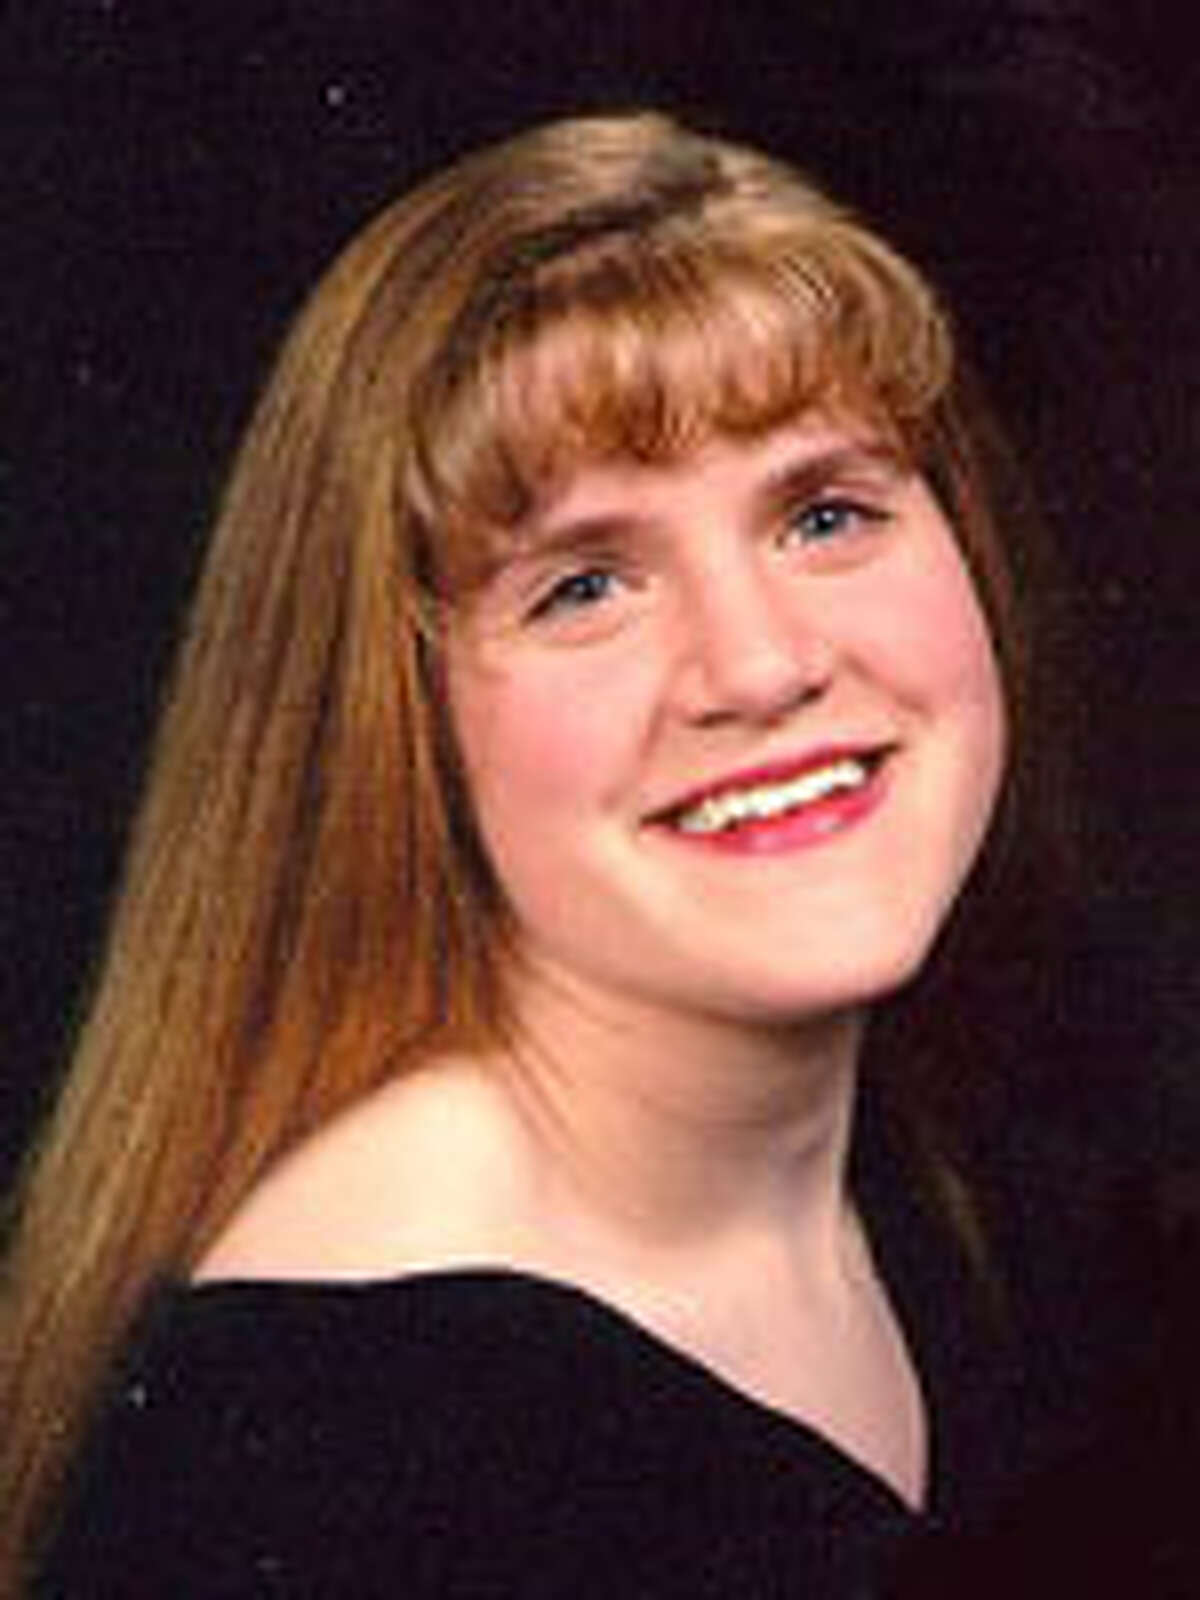 A photo of Suzanne Lyall in 1998, the year she disappeared at age 19.